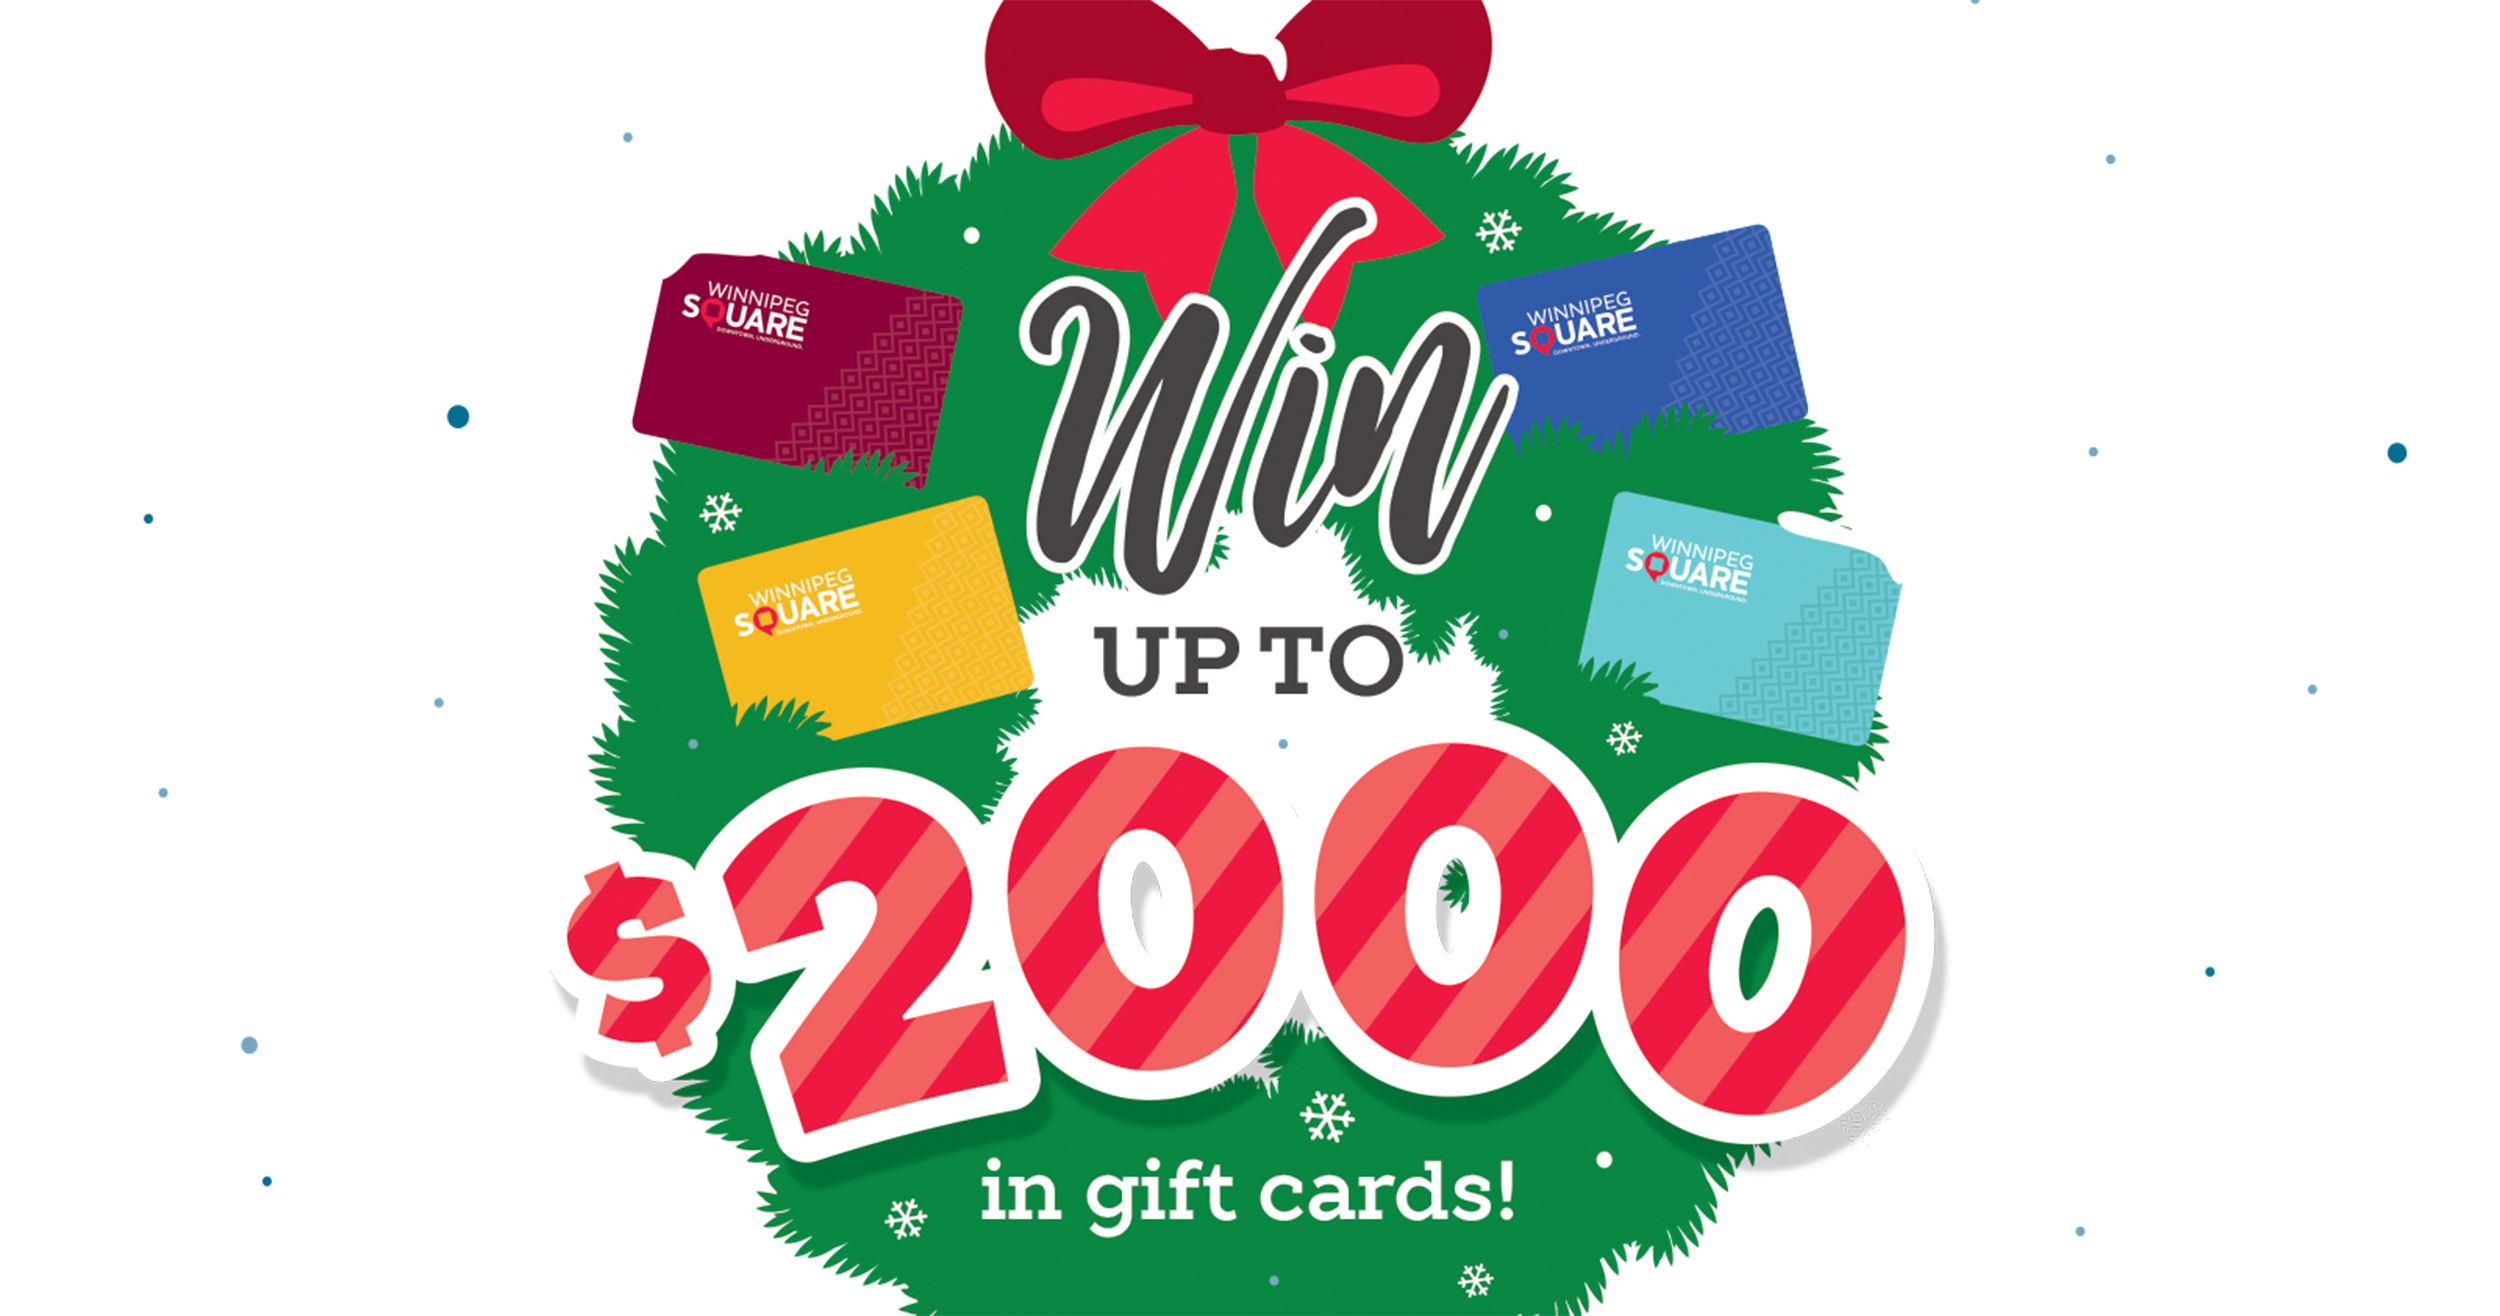 Win up to $2000 in gift cards!